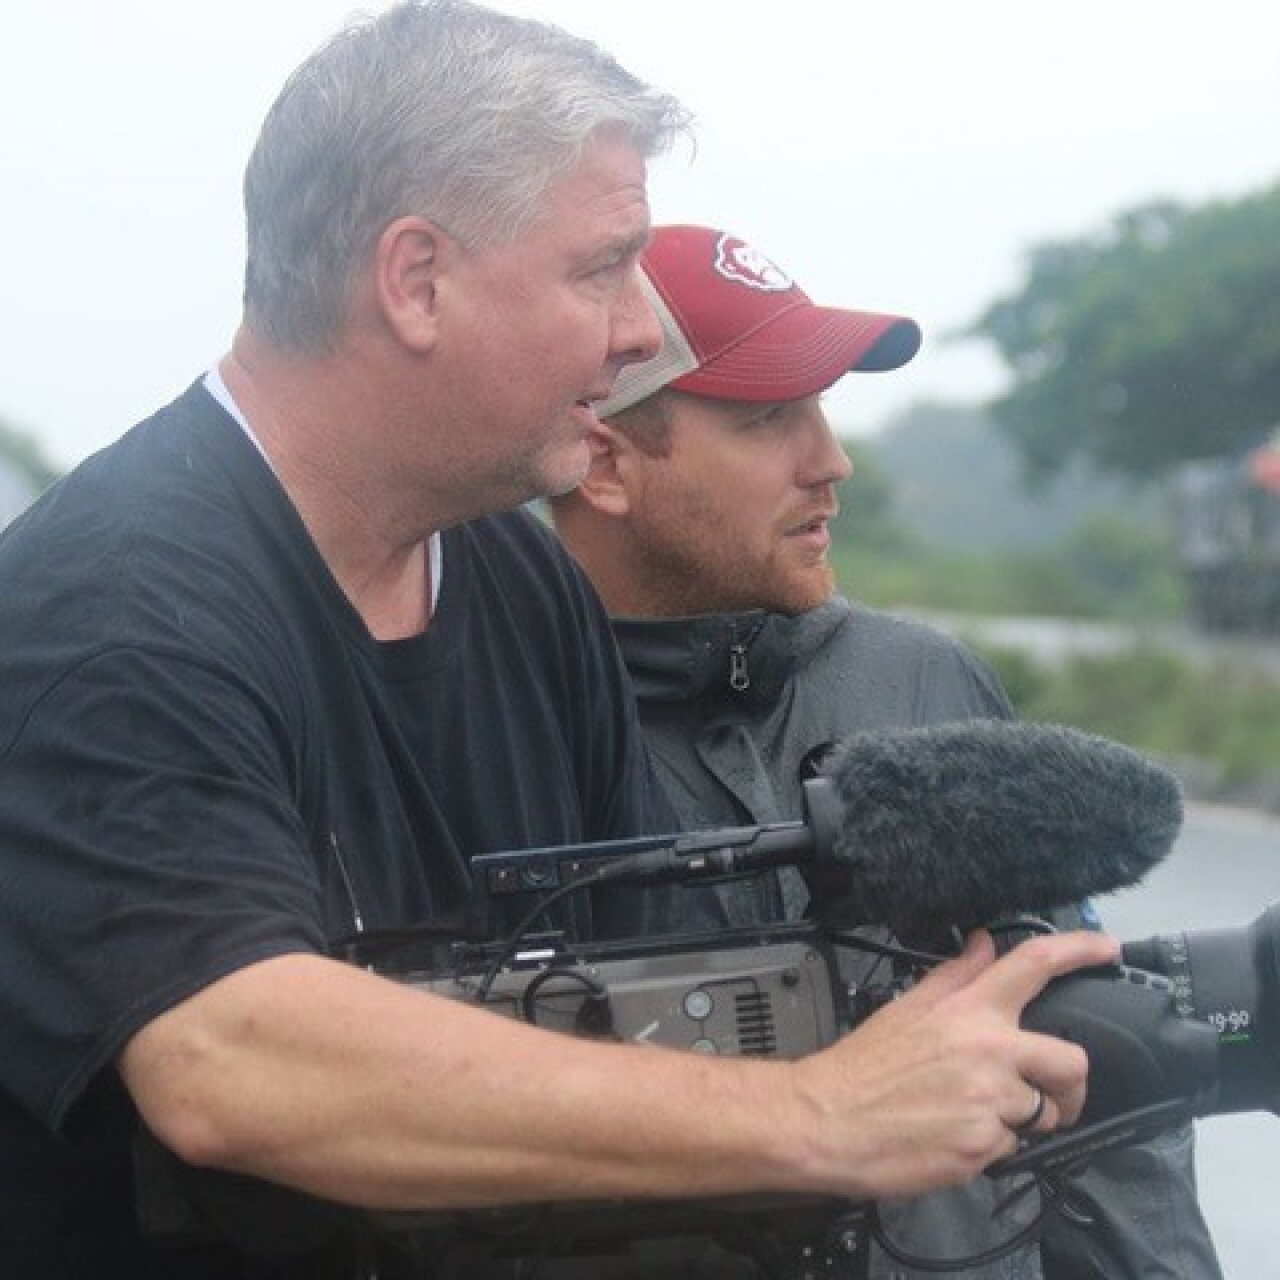 A director and videographer are looking off to the side filming a daytime scene.